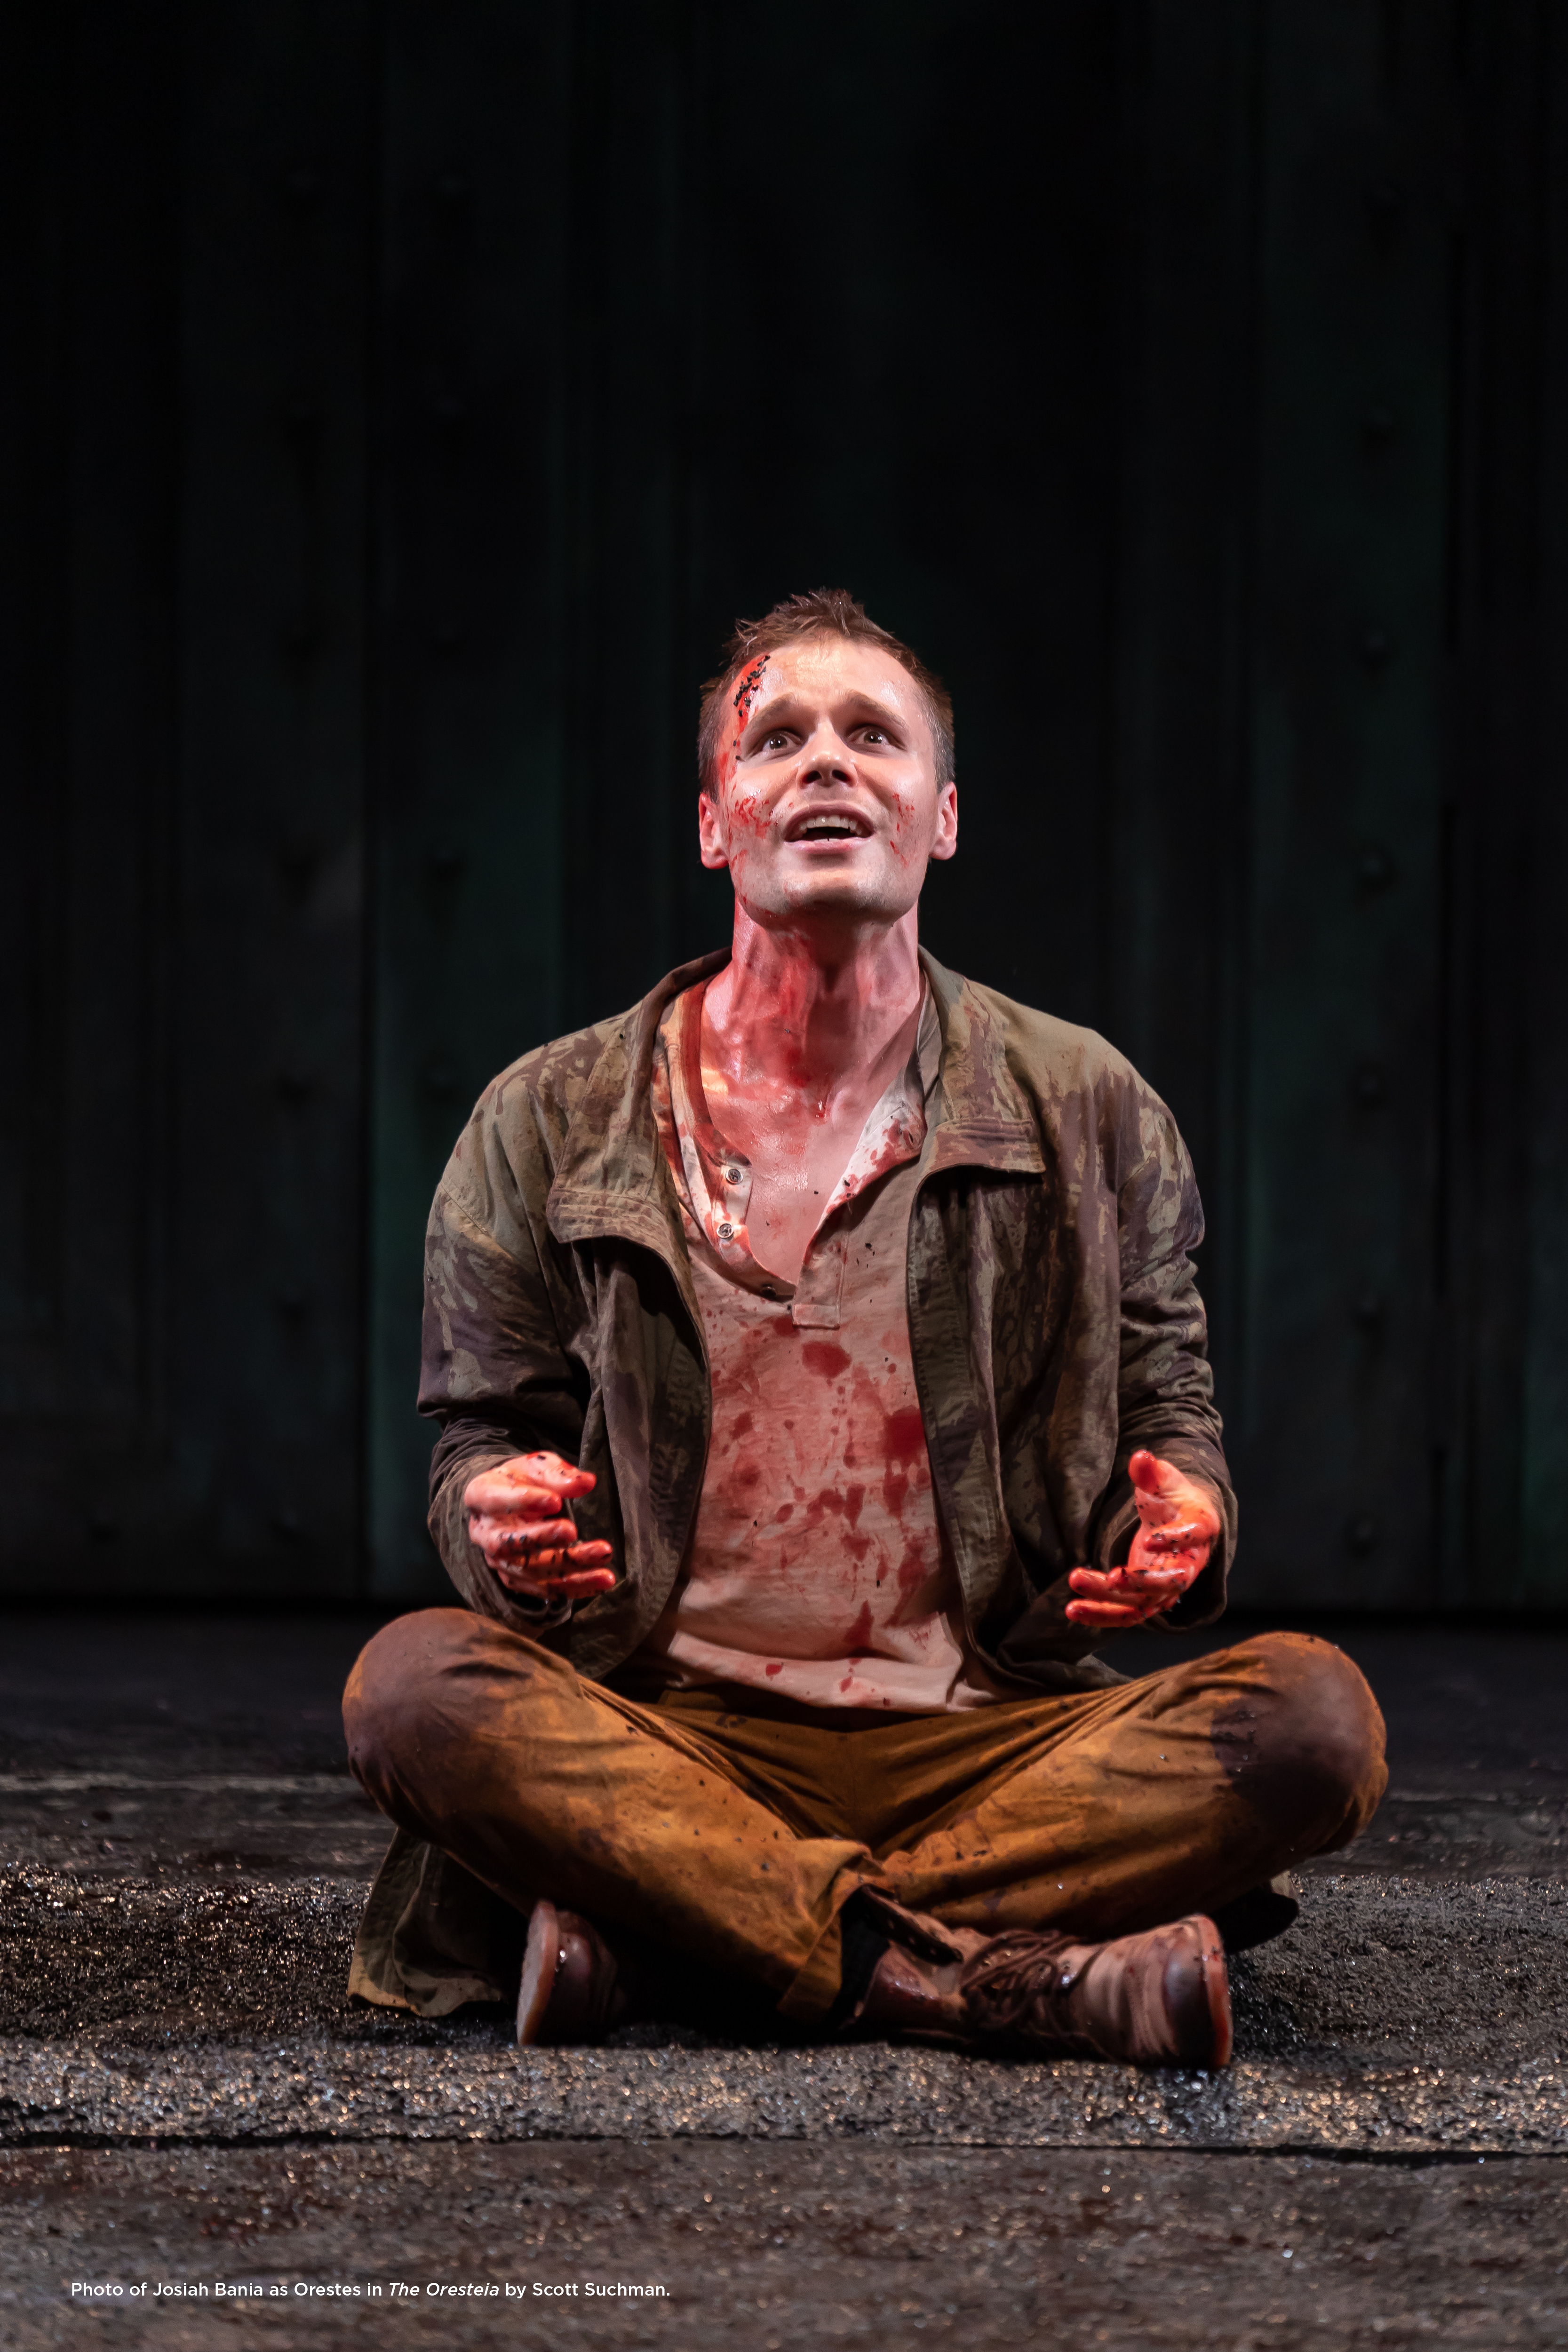 Photo of Josiah Bania as Orestes in The Oresteia by Scott Suchman.